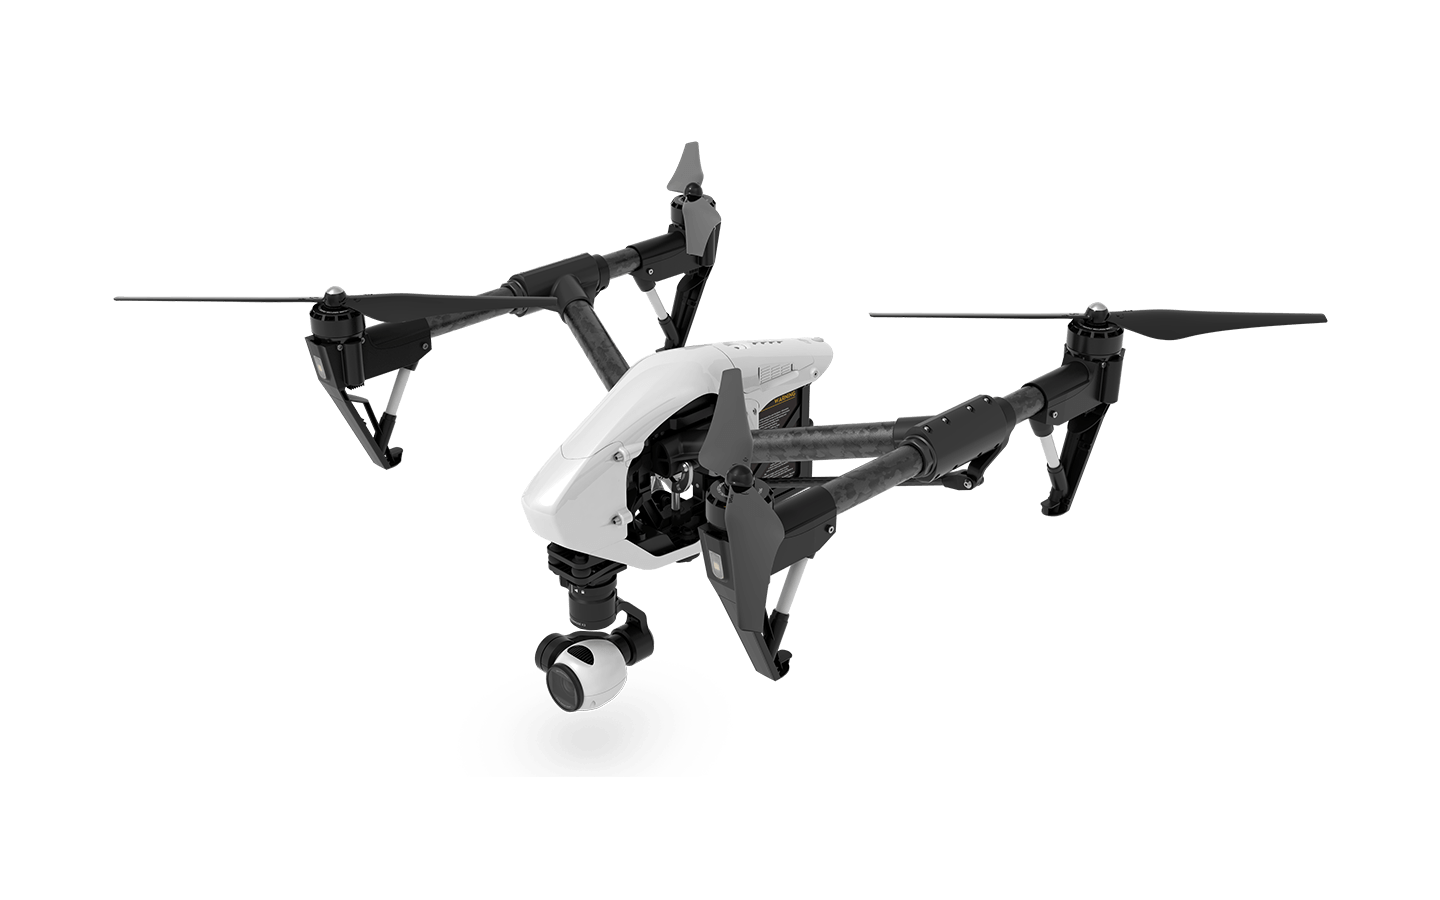 White Flying Drone PNG Image.